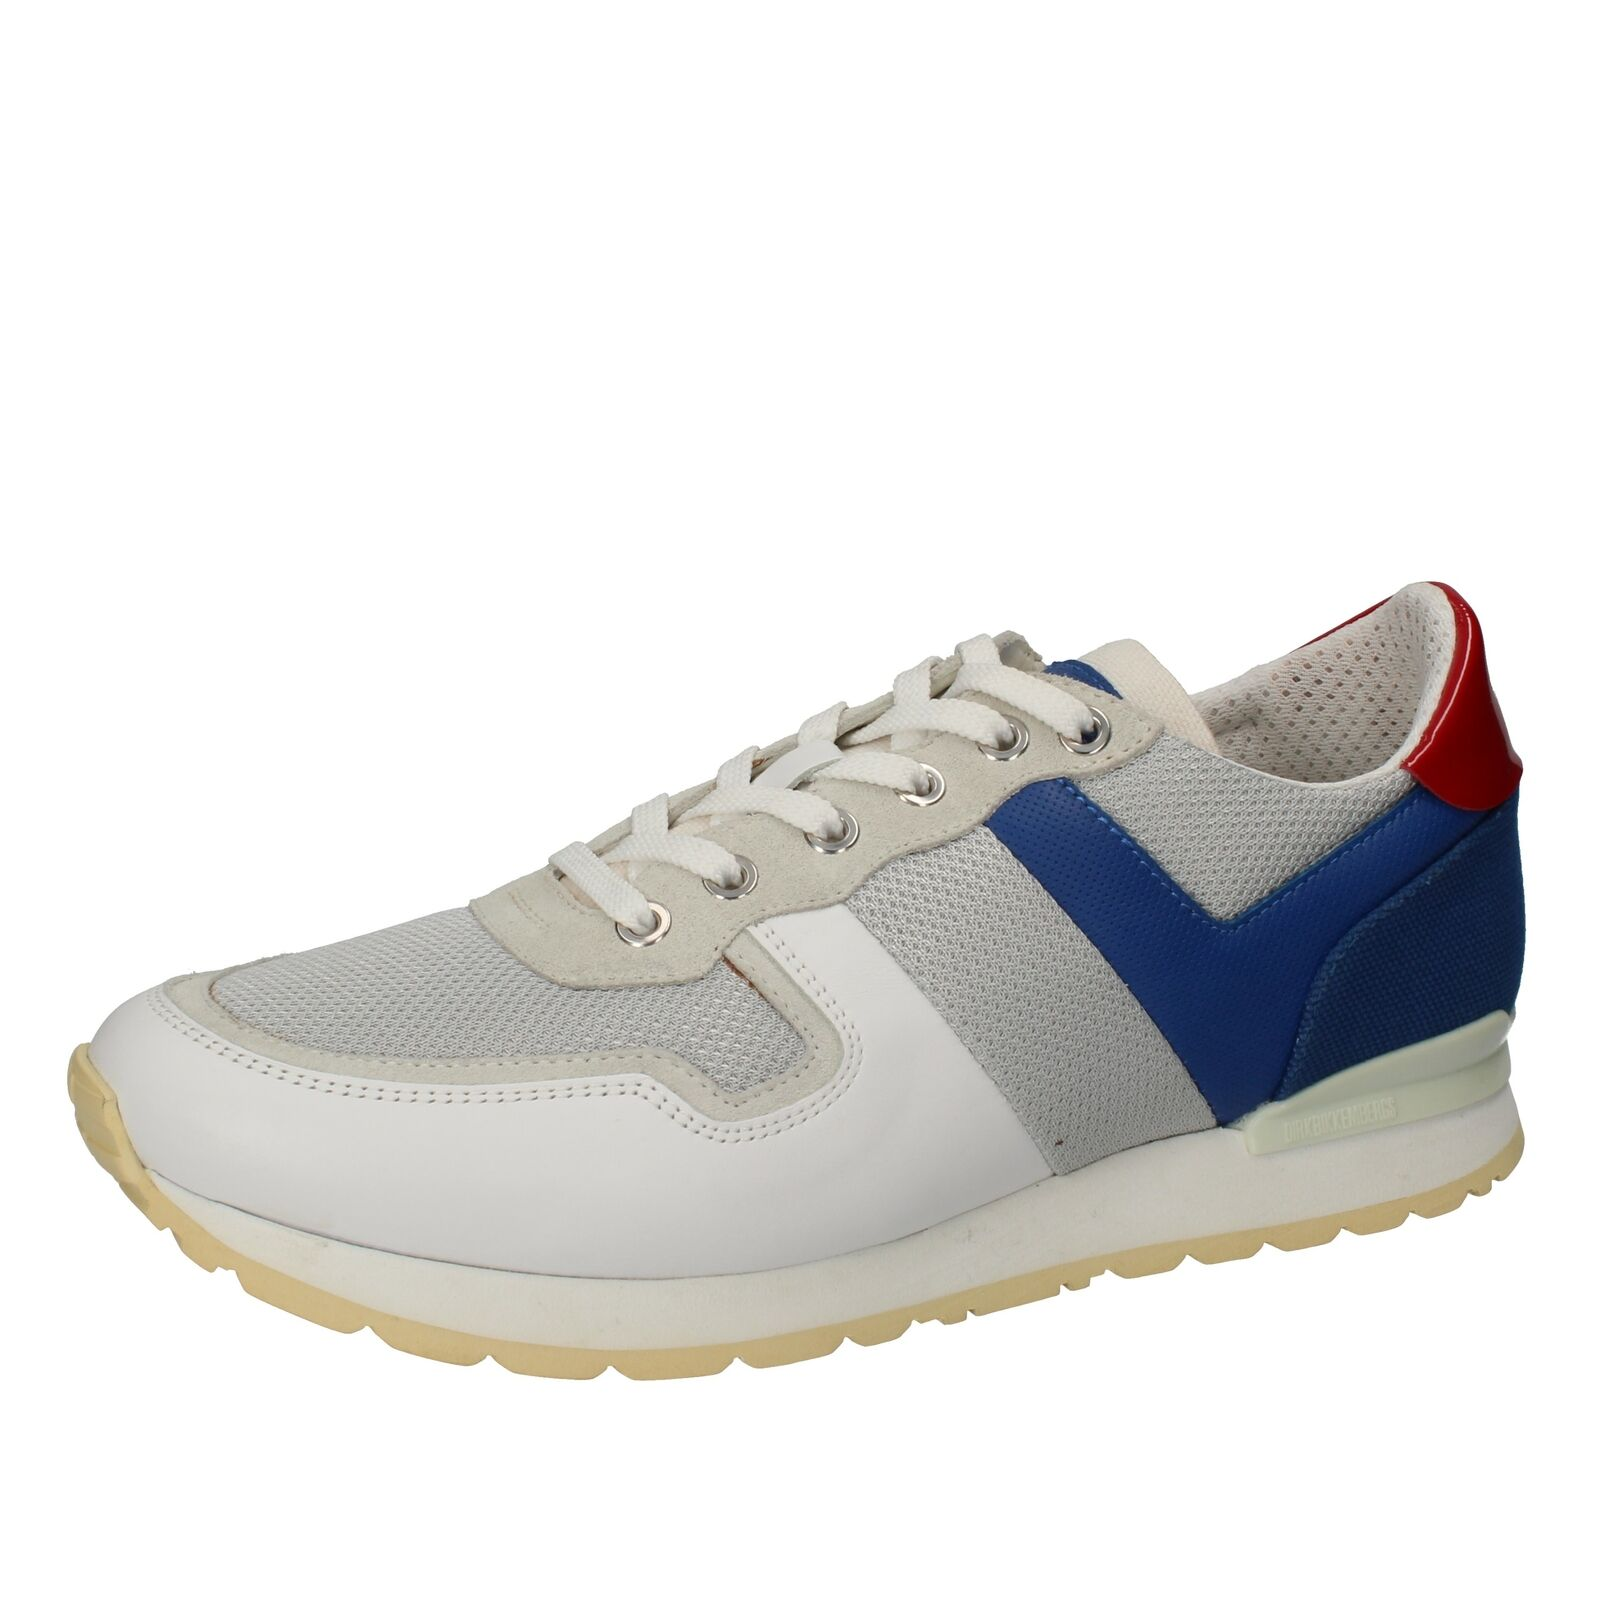 DZ453 BIKKEMBERGS EU 42 US 9 shoes white textile leather men sneakers